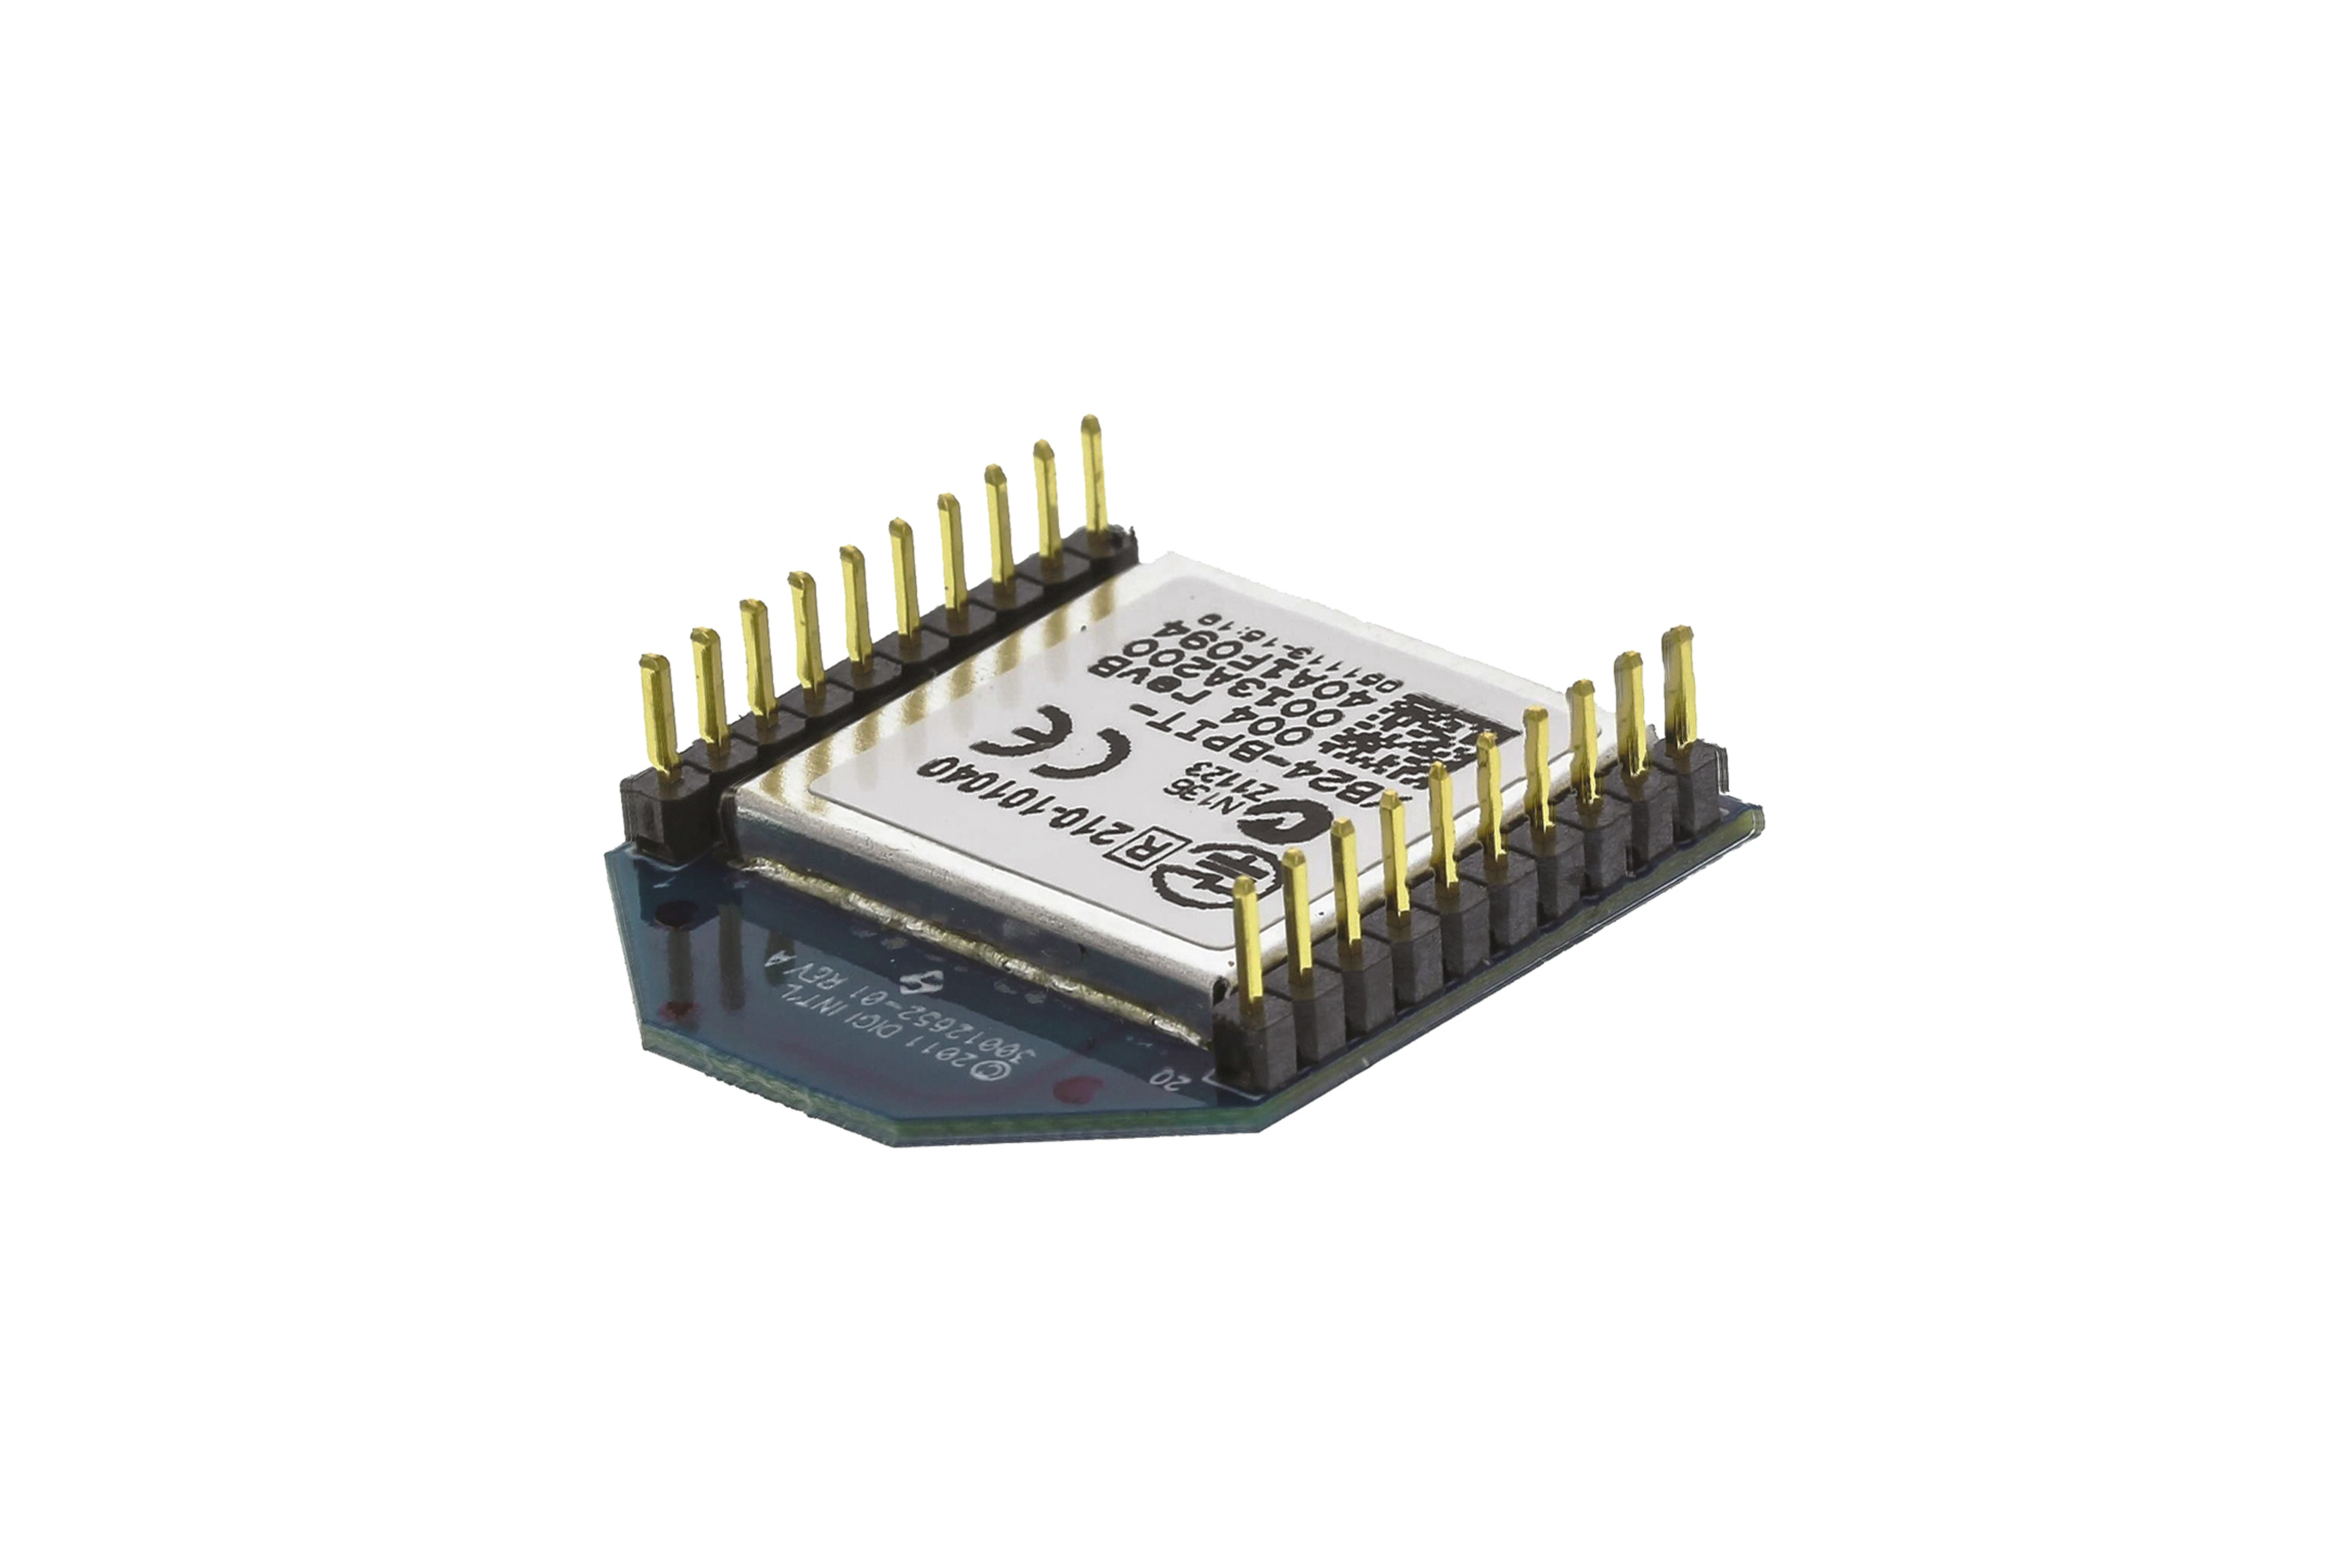 XBEE SERIE 2 HF-MODUL PCB-ANTENNE 1 MW